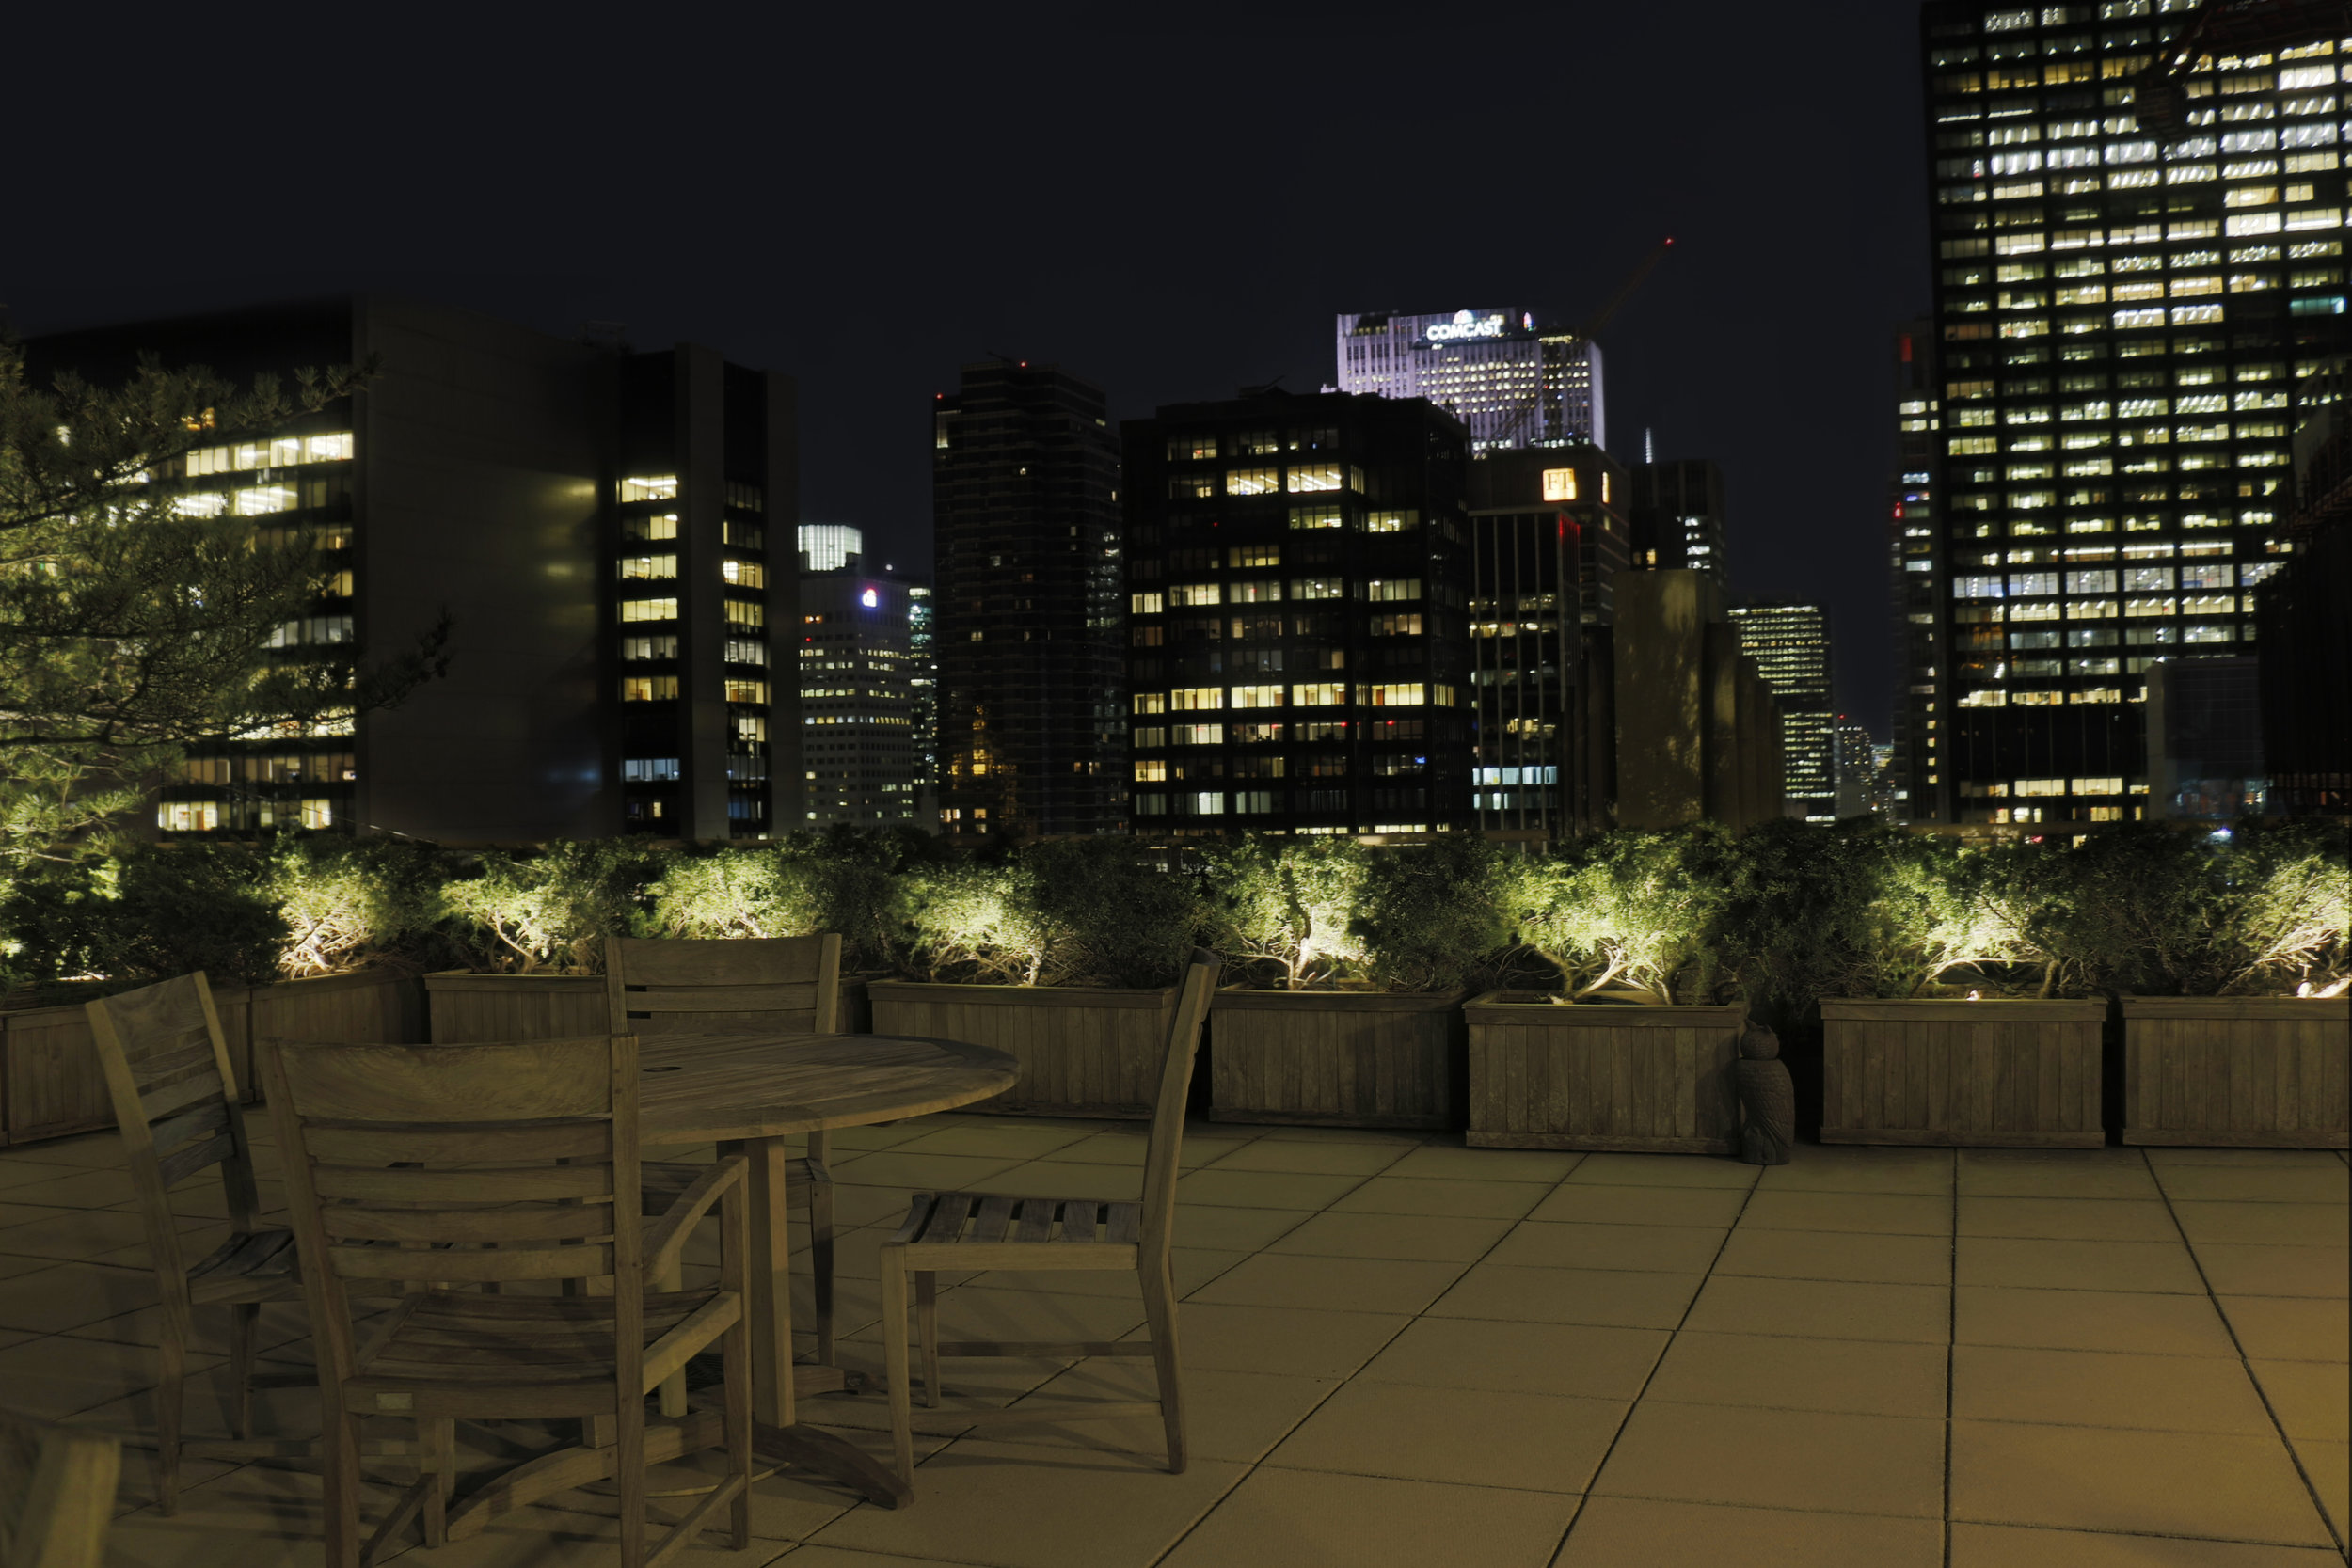 Patio Skyline in Back.jpg